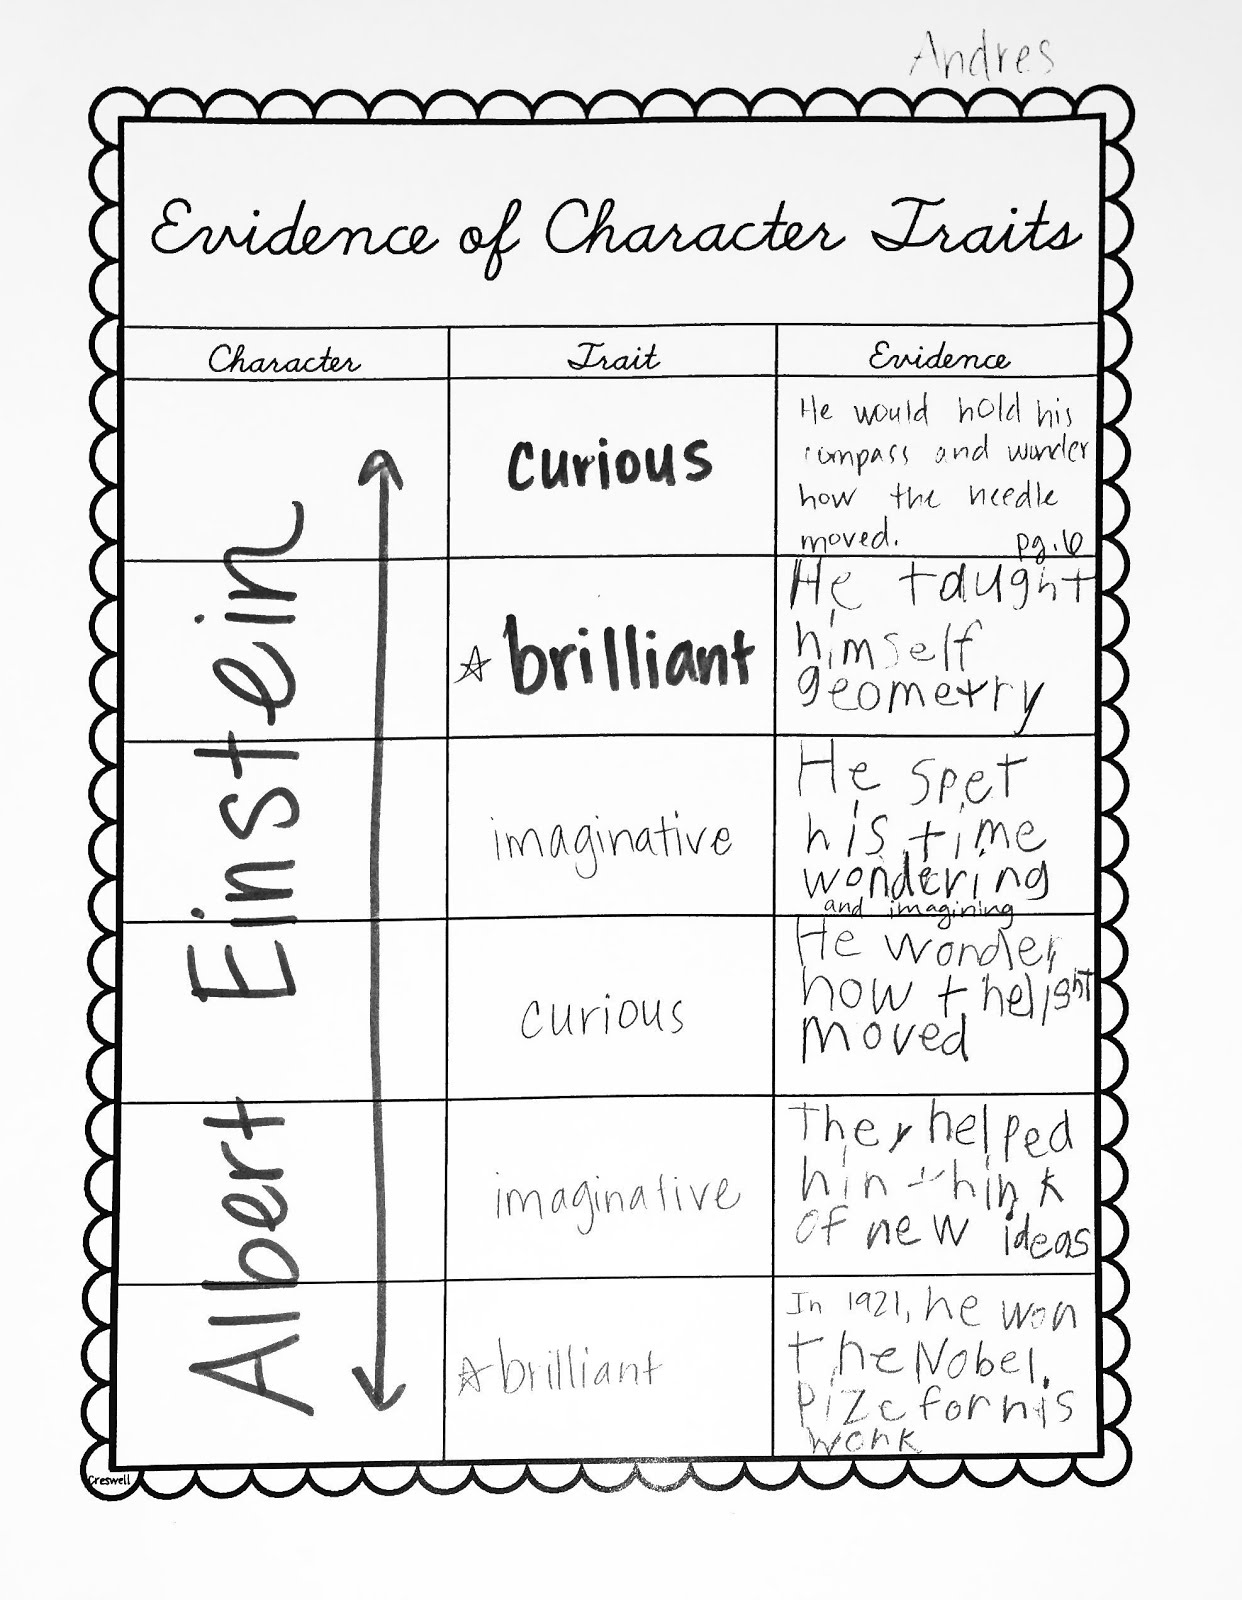 evidence of character traits albert einstein